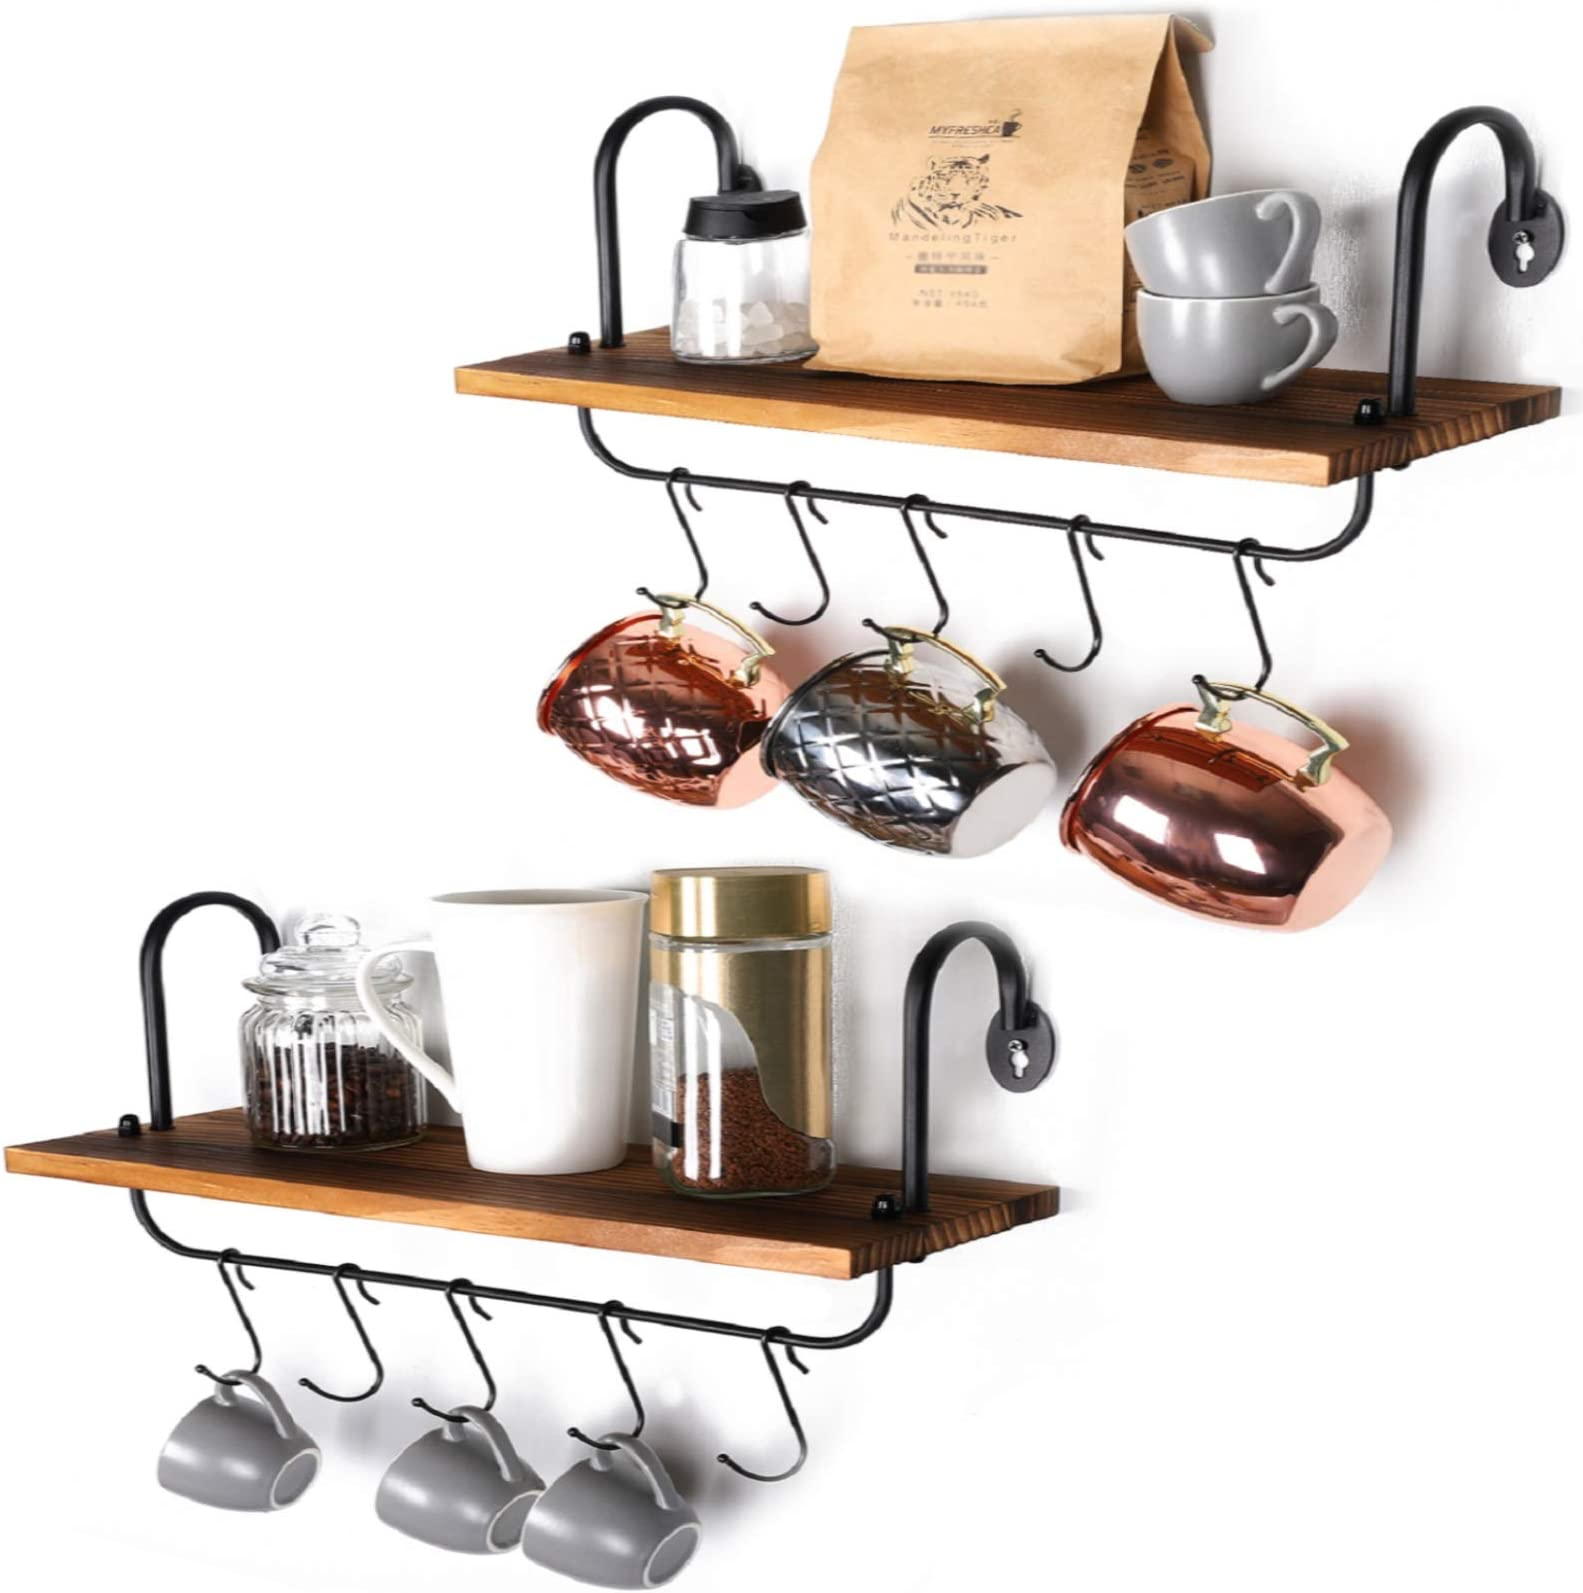 Olakee Floating Wall Shelves for Kitchen Bathroom Coffee Nook with 10 Adjustable Hooks for Mugs Cooking Utensils or Towel Rustic Storage Shelves Set of 2/17x5.9 inch (Carbonized Black)